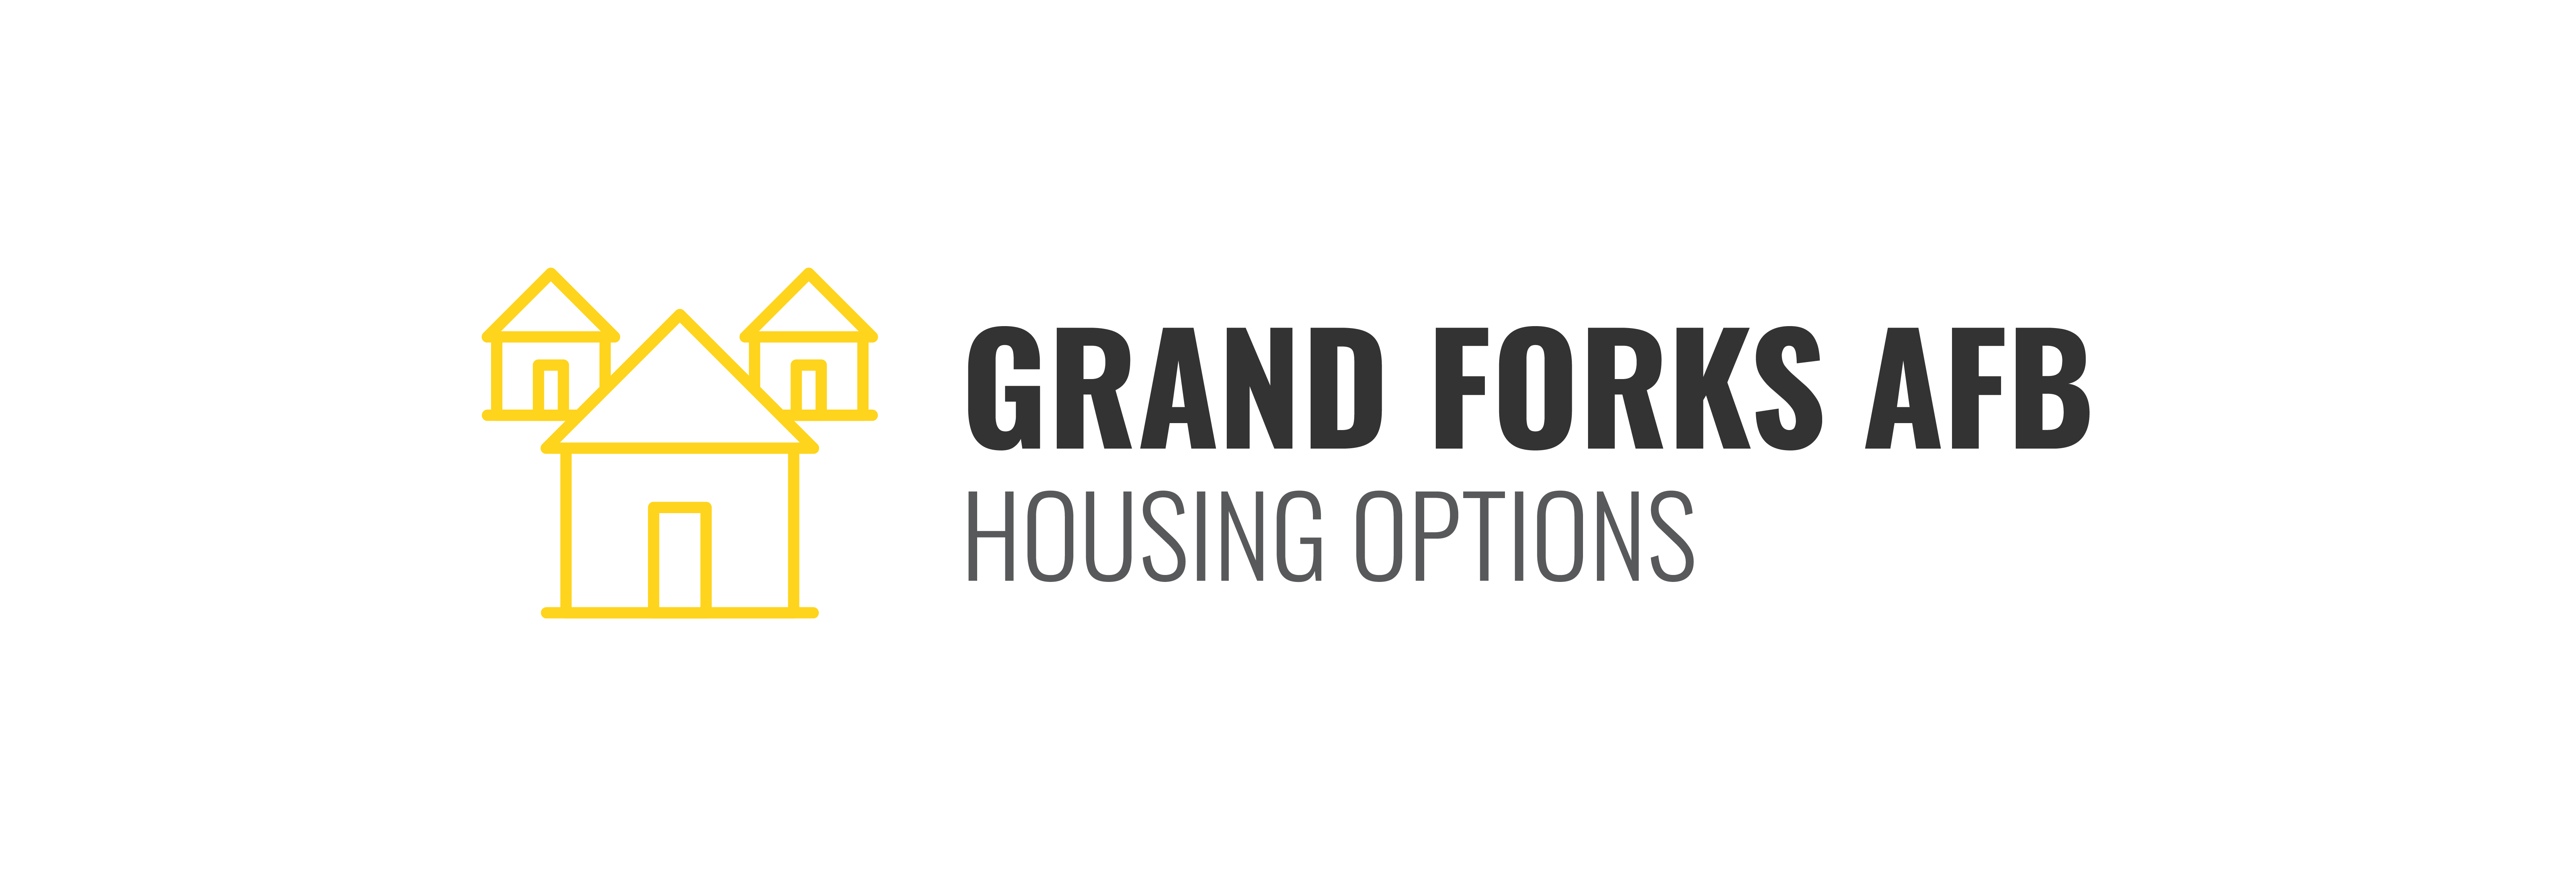 Grand Forks AFB Housing Options